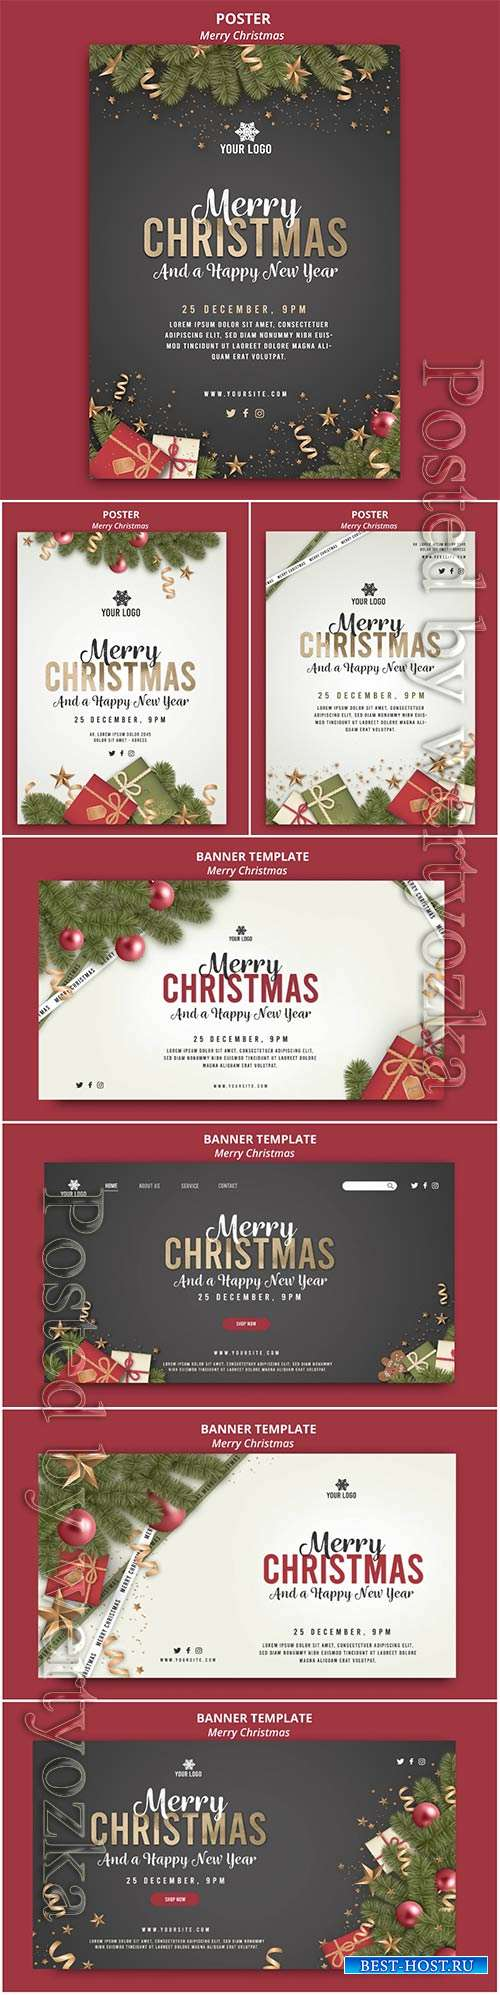 Merry christmas and happy new year background banner